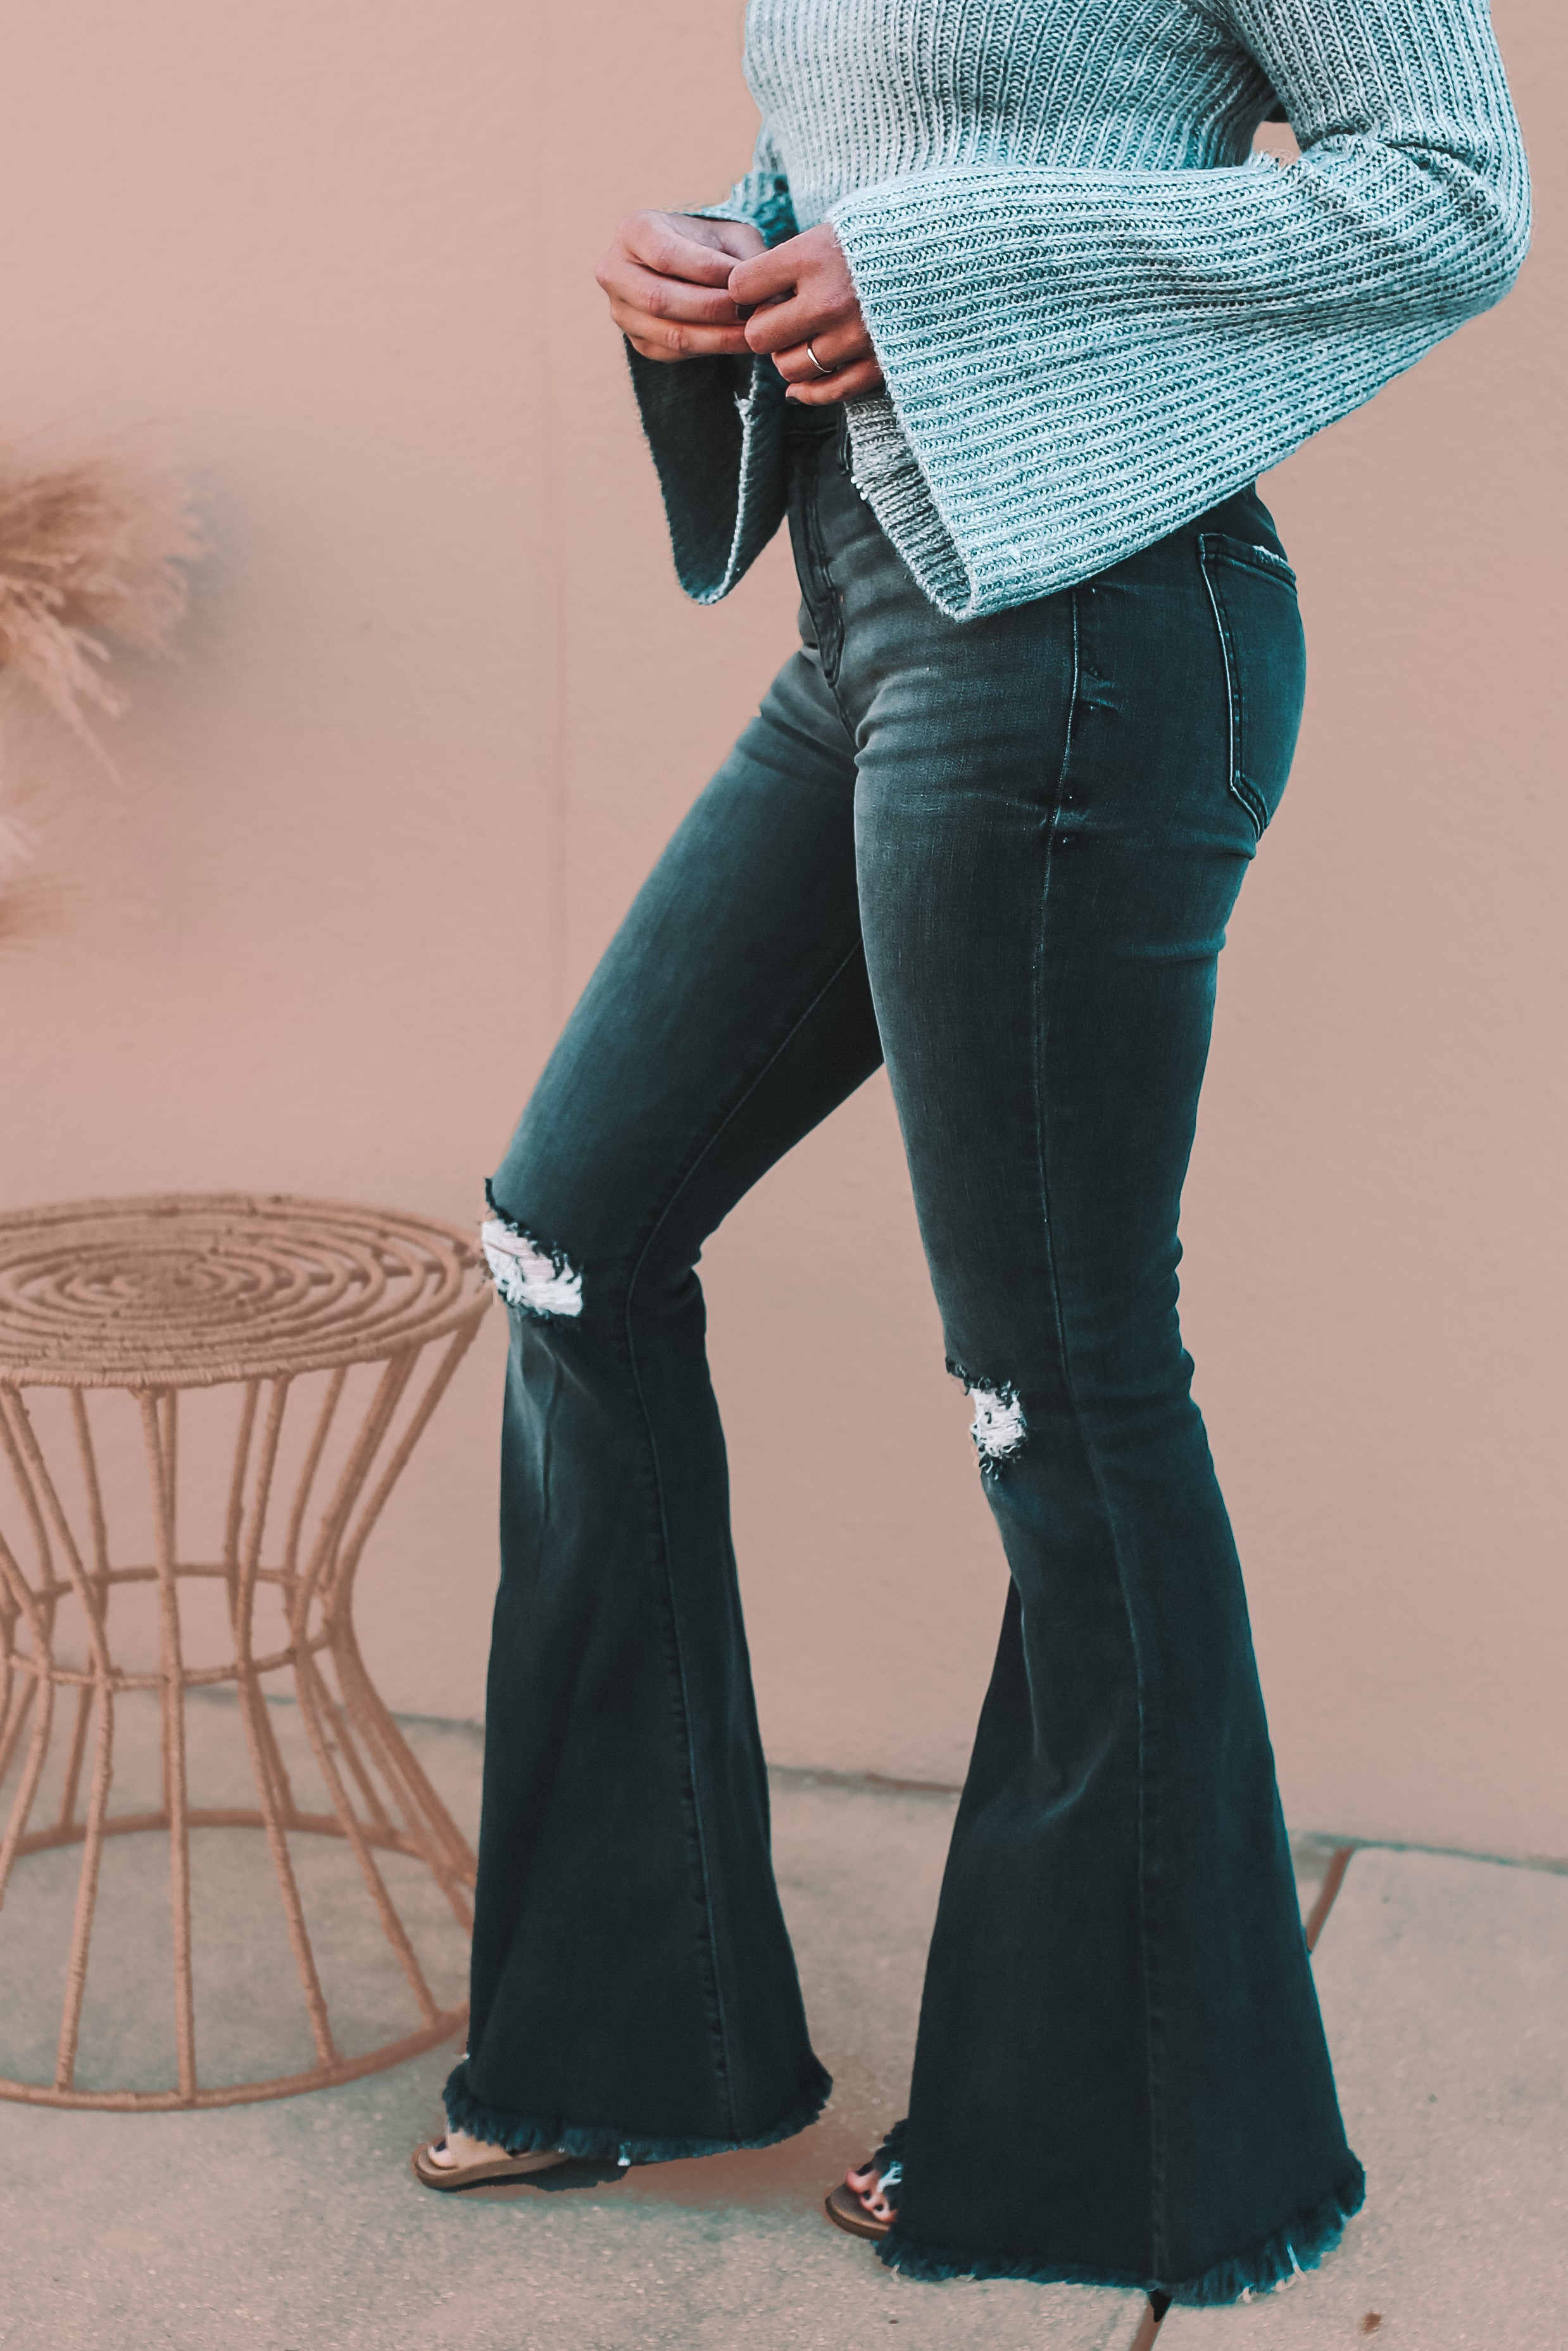 """SAME CUT AS OUR BEST-SELLING WHITE BELL BOTTOMS! HIGH RISE, BLACK WASH PREMIUM DENIM. VERY SOFT AND STRETCHY. DISTRESSED KNEES AND HEM. INSEAM: 33"""" FOR ALL SIZES. 73% COTTON 14% RAYON 11% POLYESTER 2% SPANDEX."""